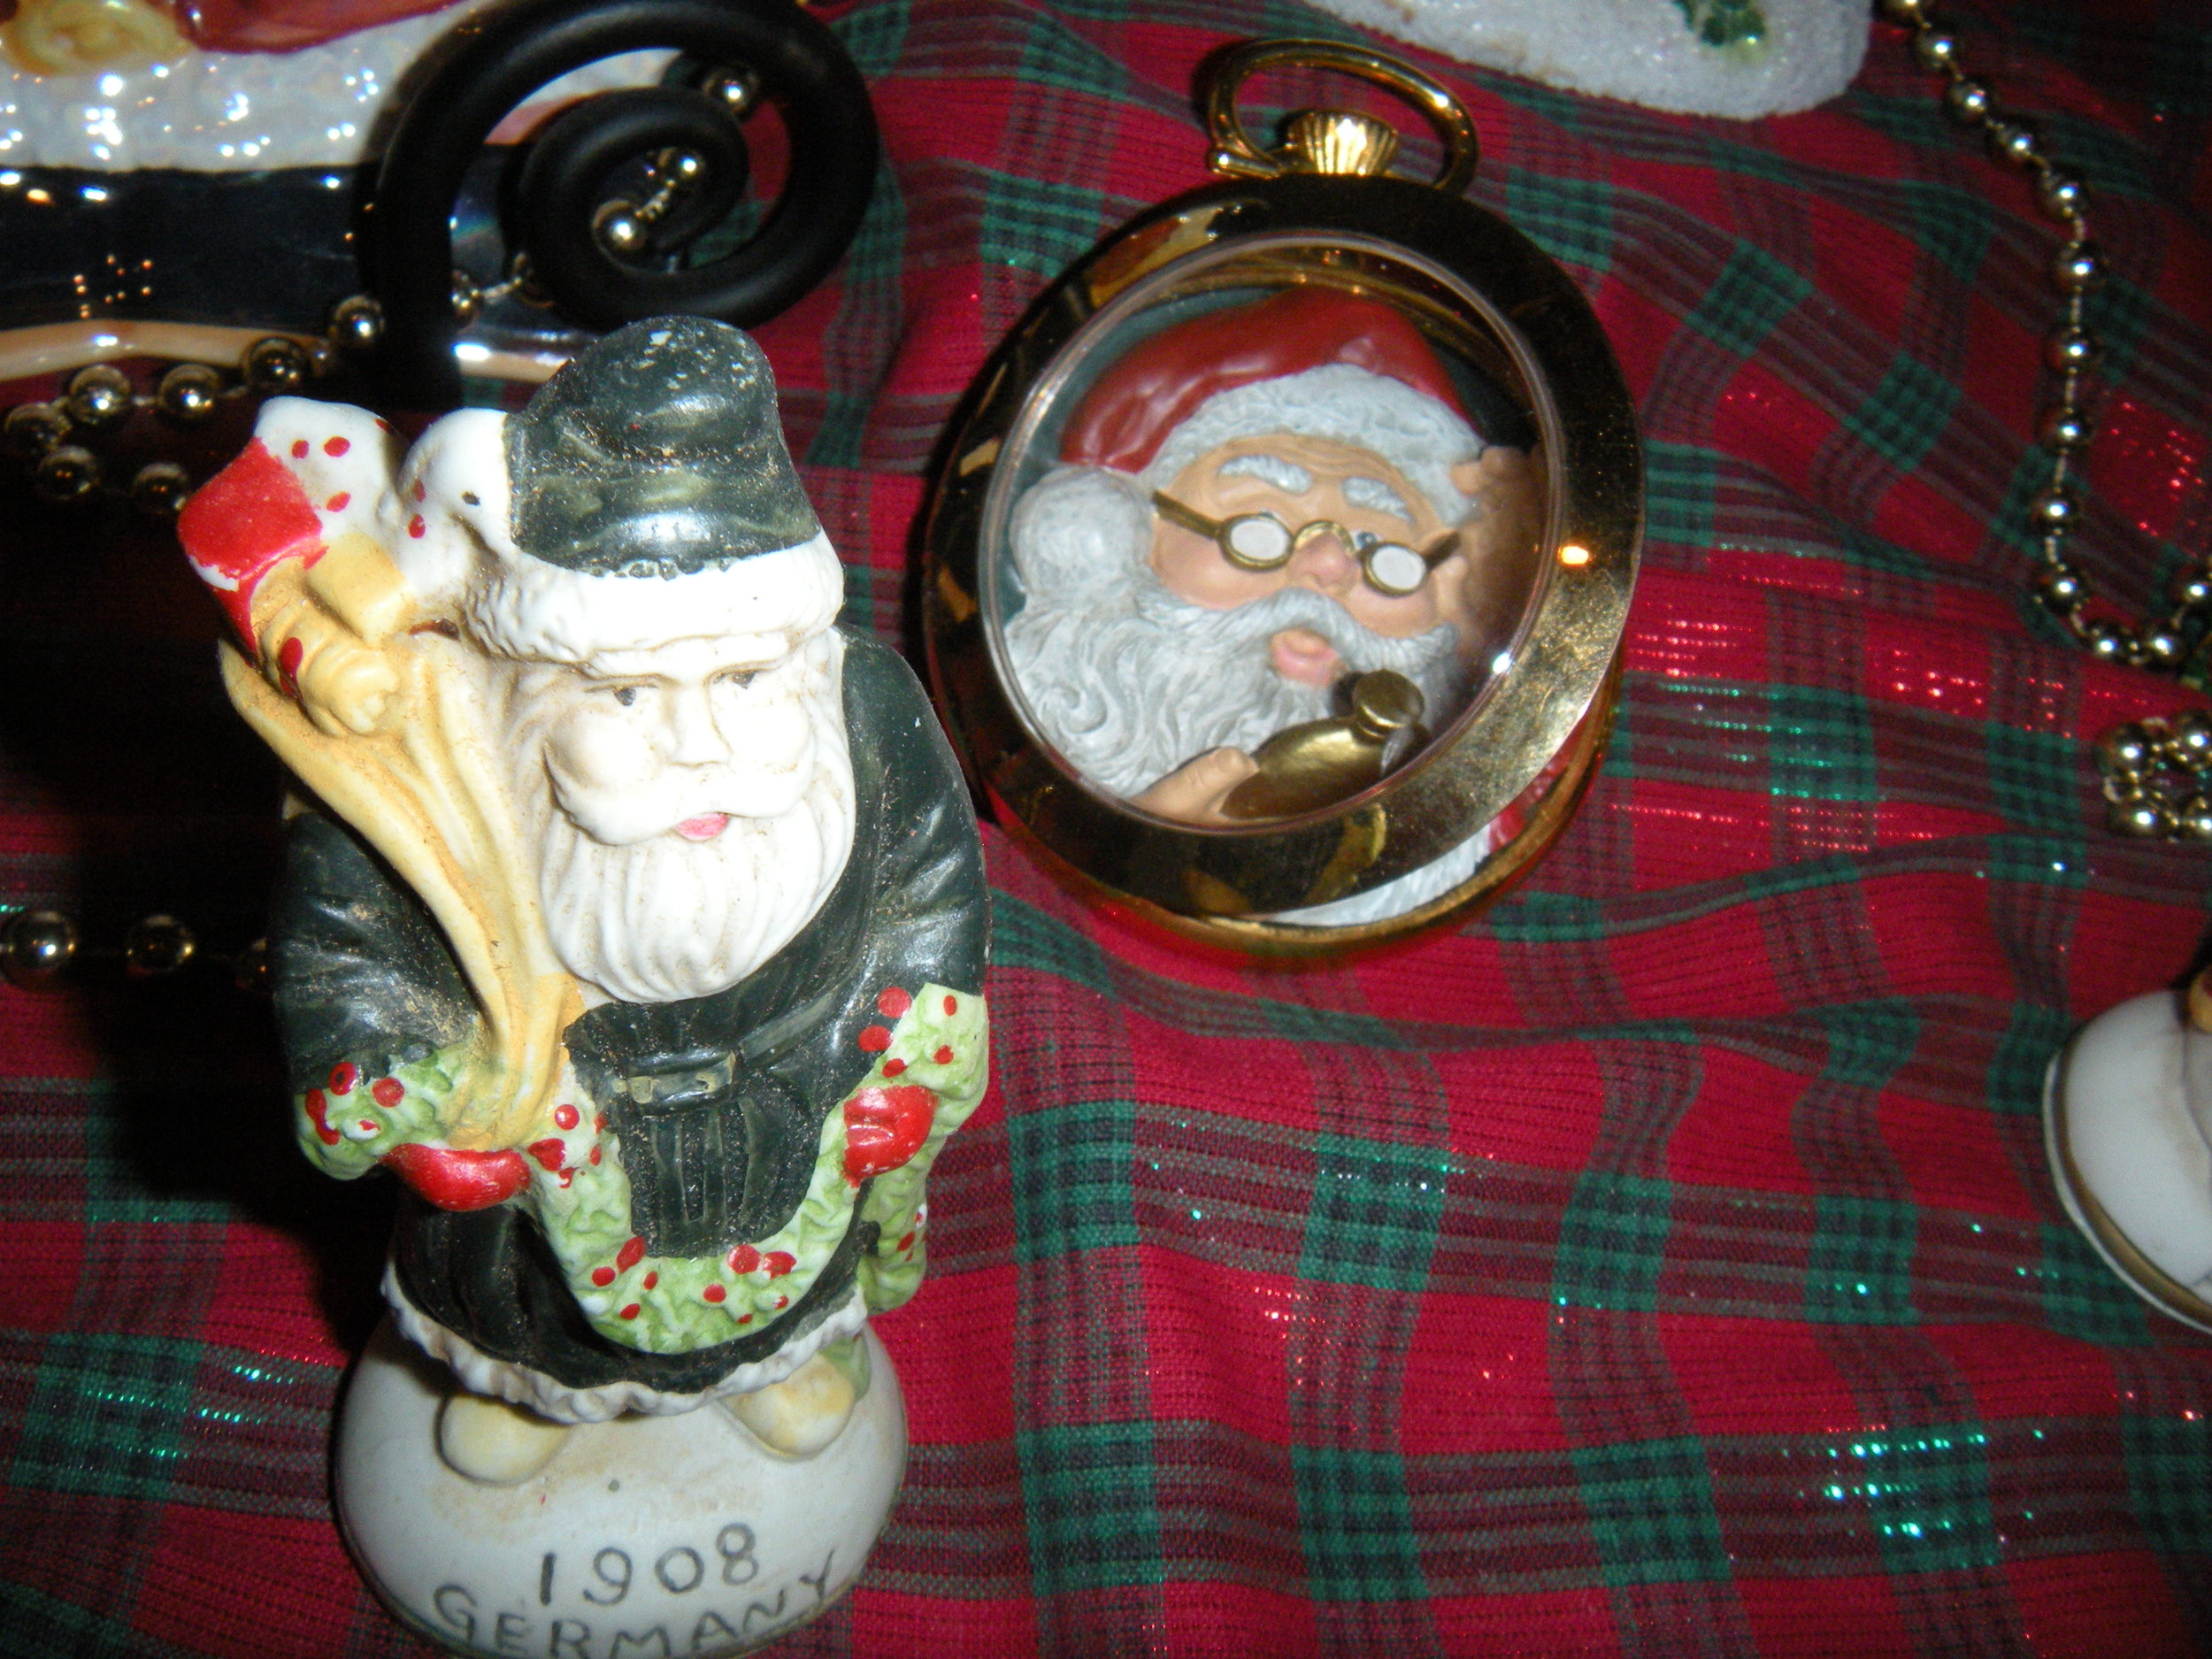 I have a 1940's set of Santas from around the world. The Santa in the pocket watch is looking at his pocket watch. Clever, right?